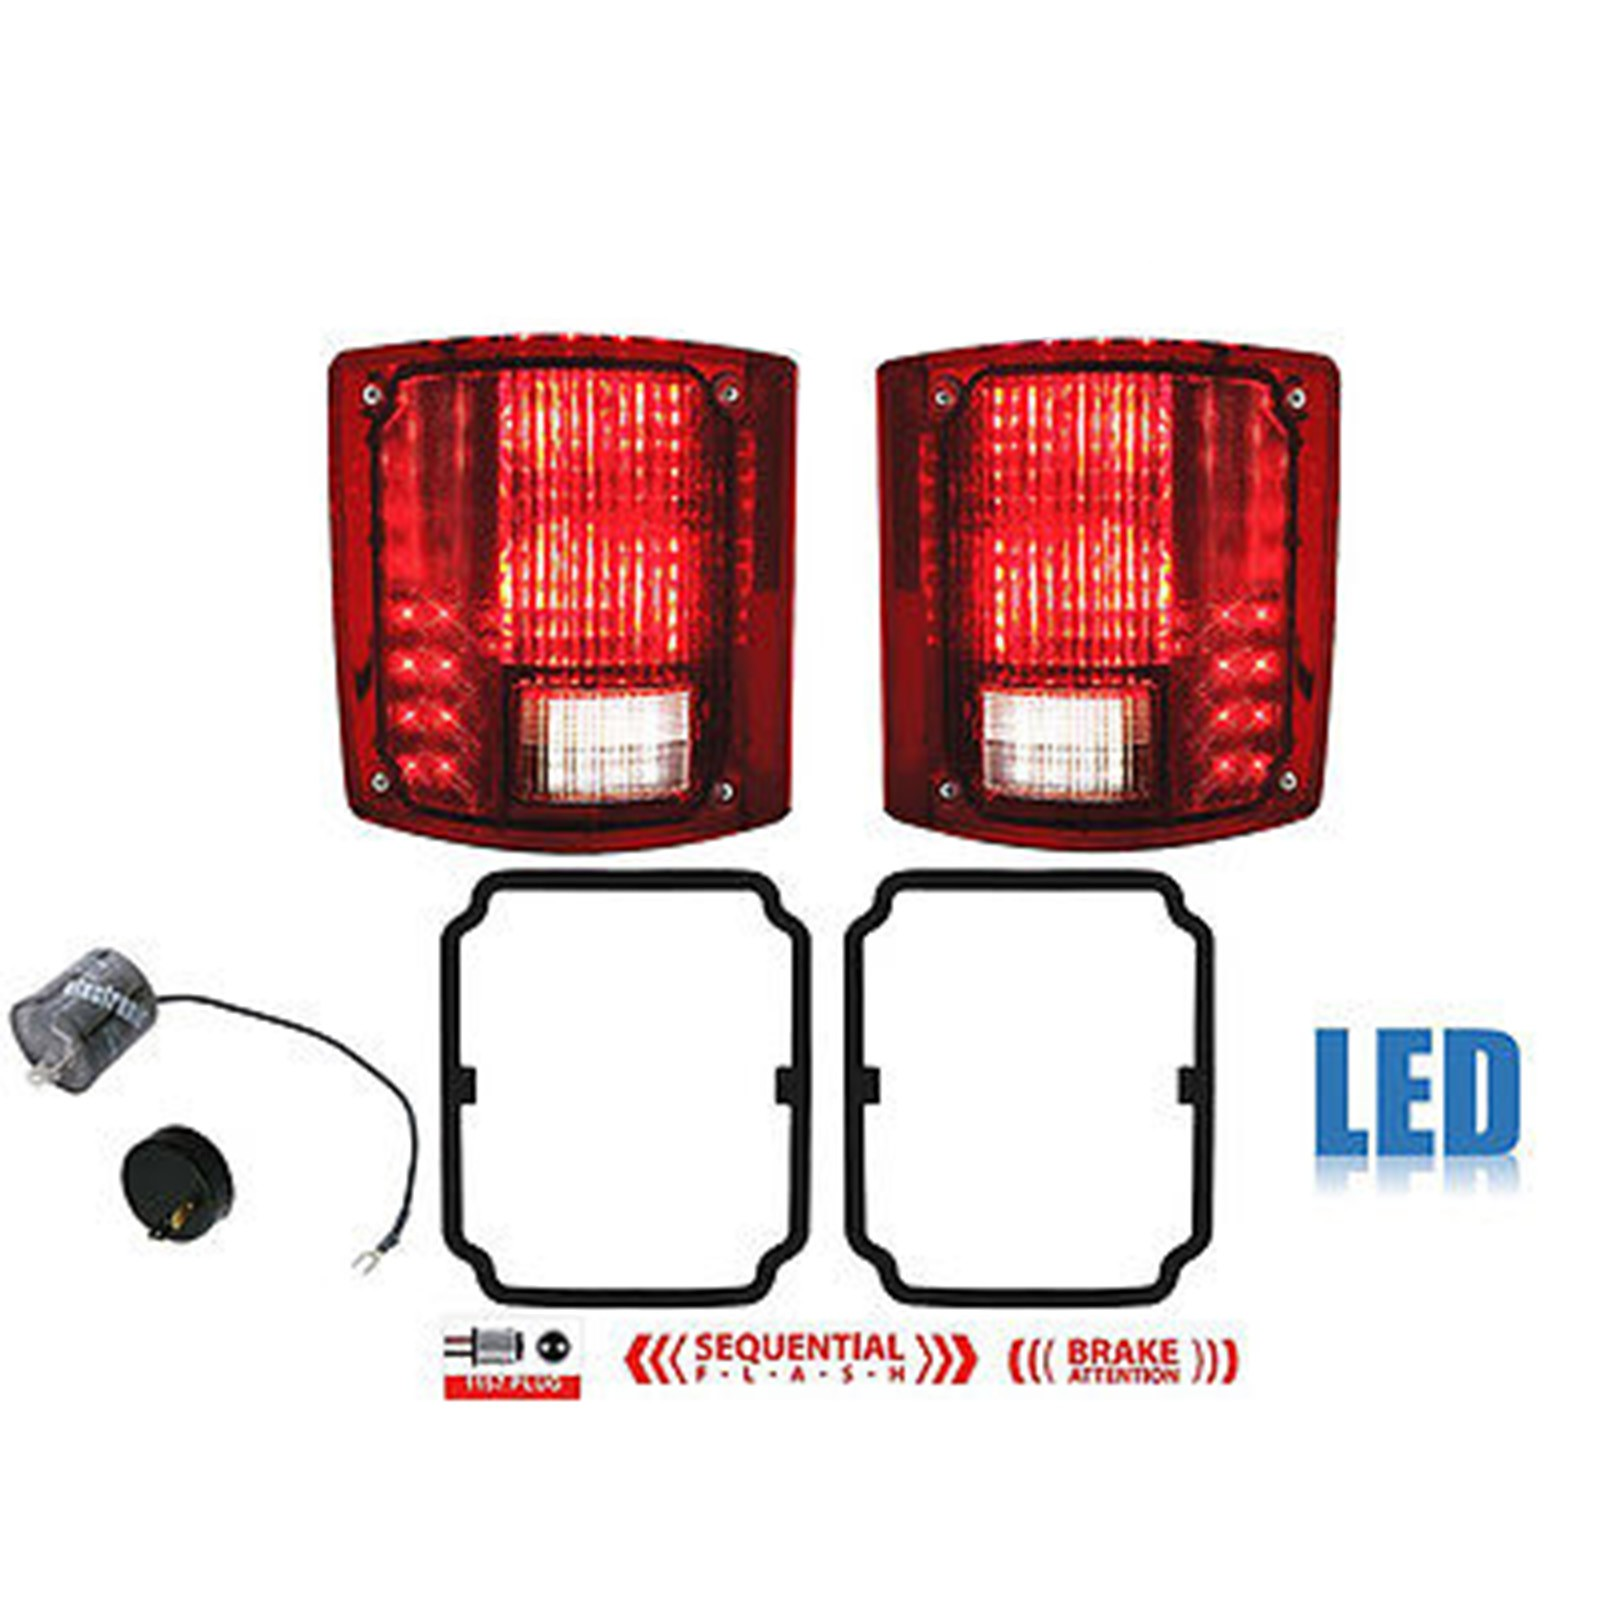 73 91 Chevy GMC Truck LED Sequential Tail Light Lens & Gaskets Pair w Flasher